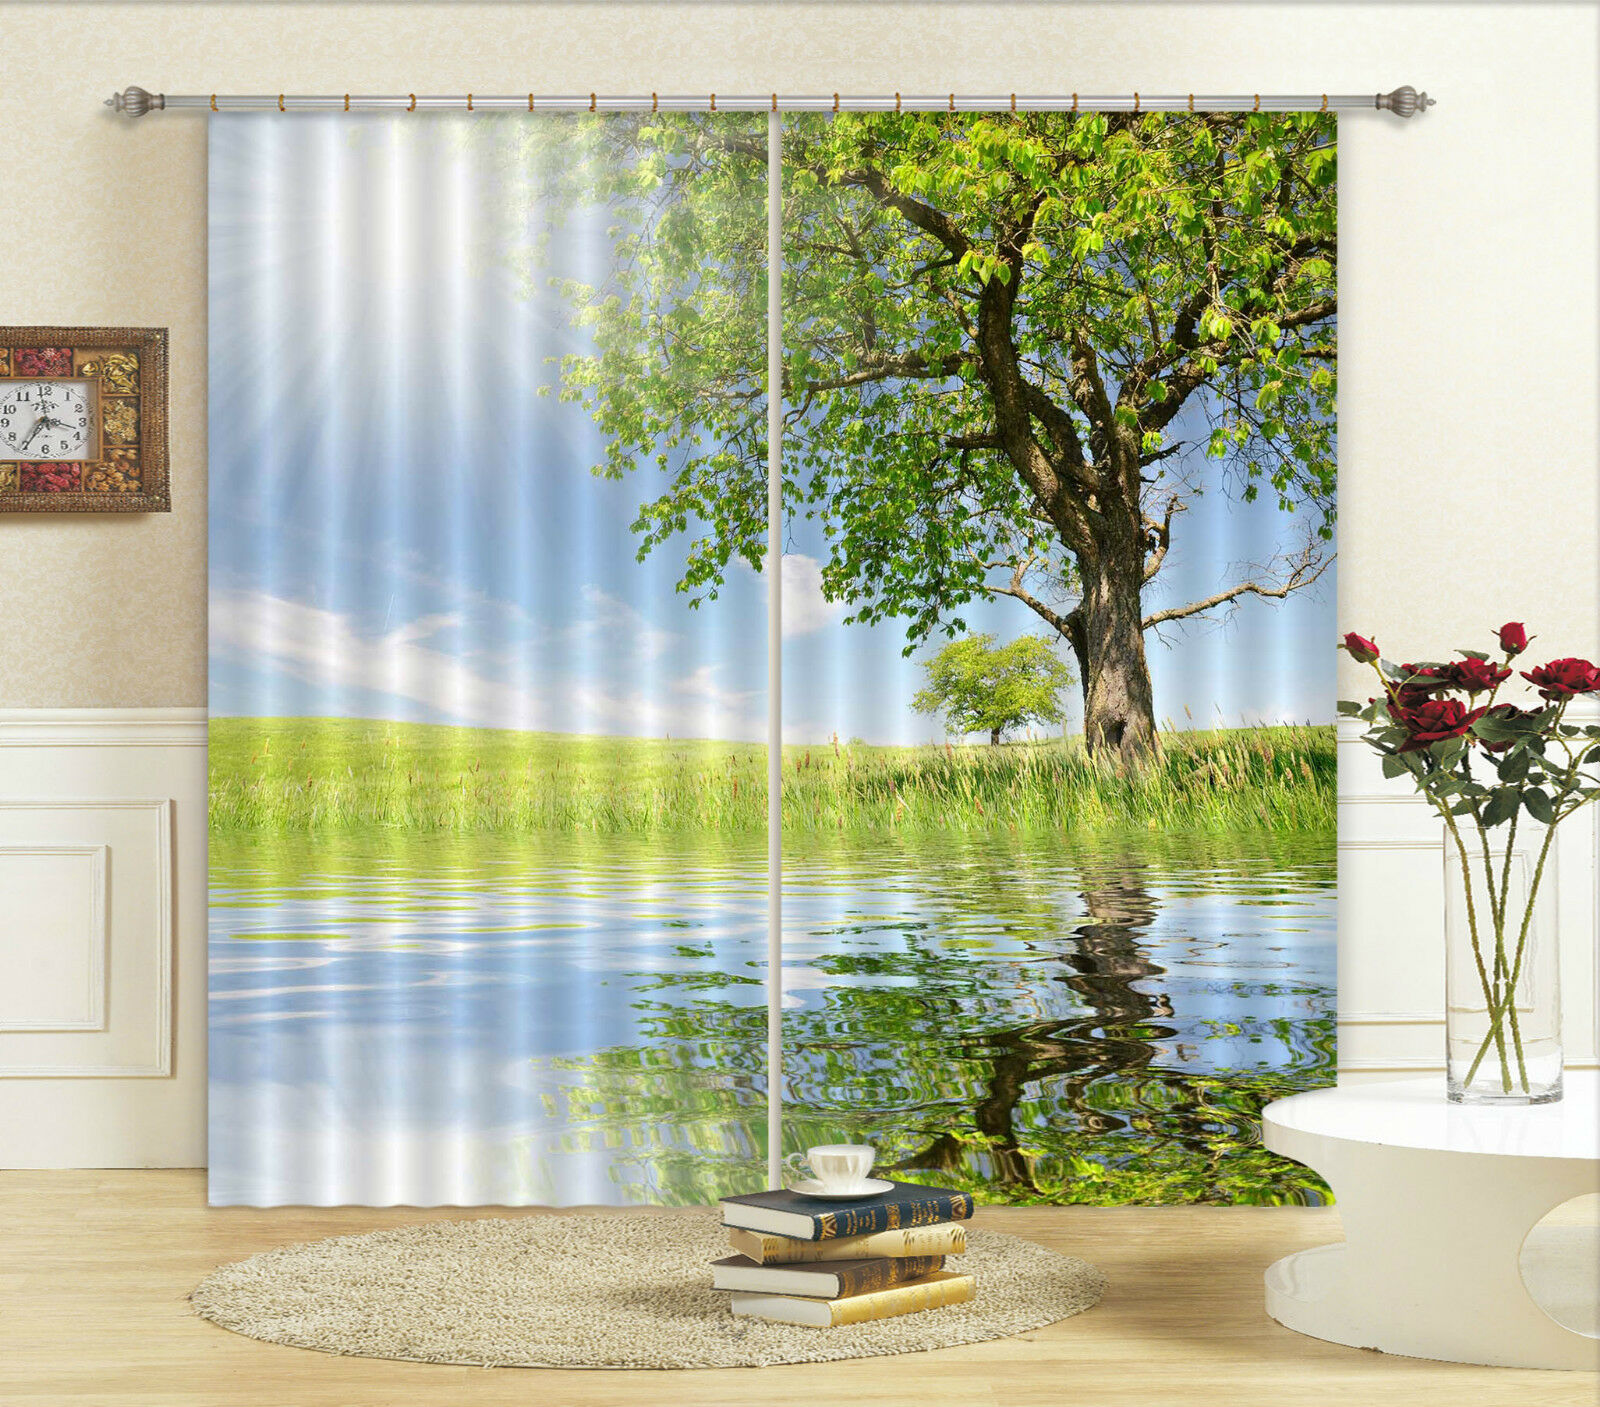 Gentle 3d Blumen Hirsch 89 Duschvorhang Wasserdicht Faser Bad Daheim Windows Toilette Curtains, Drapes & Valances